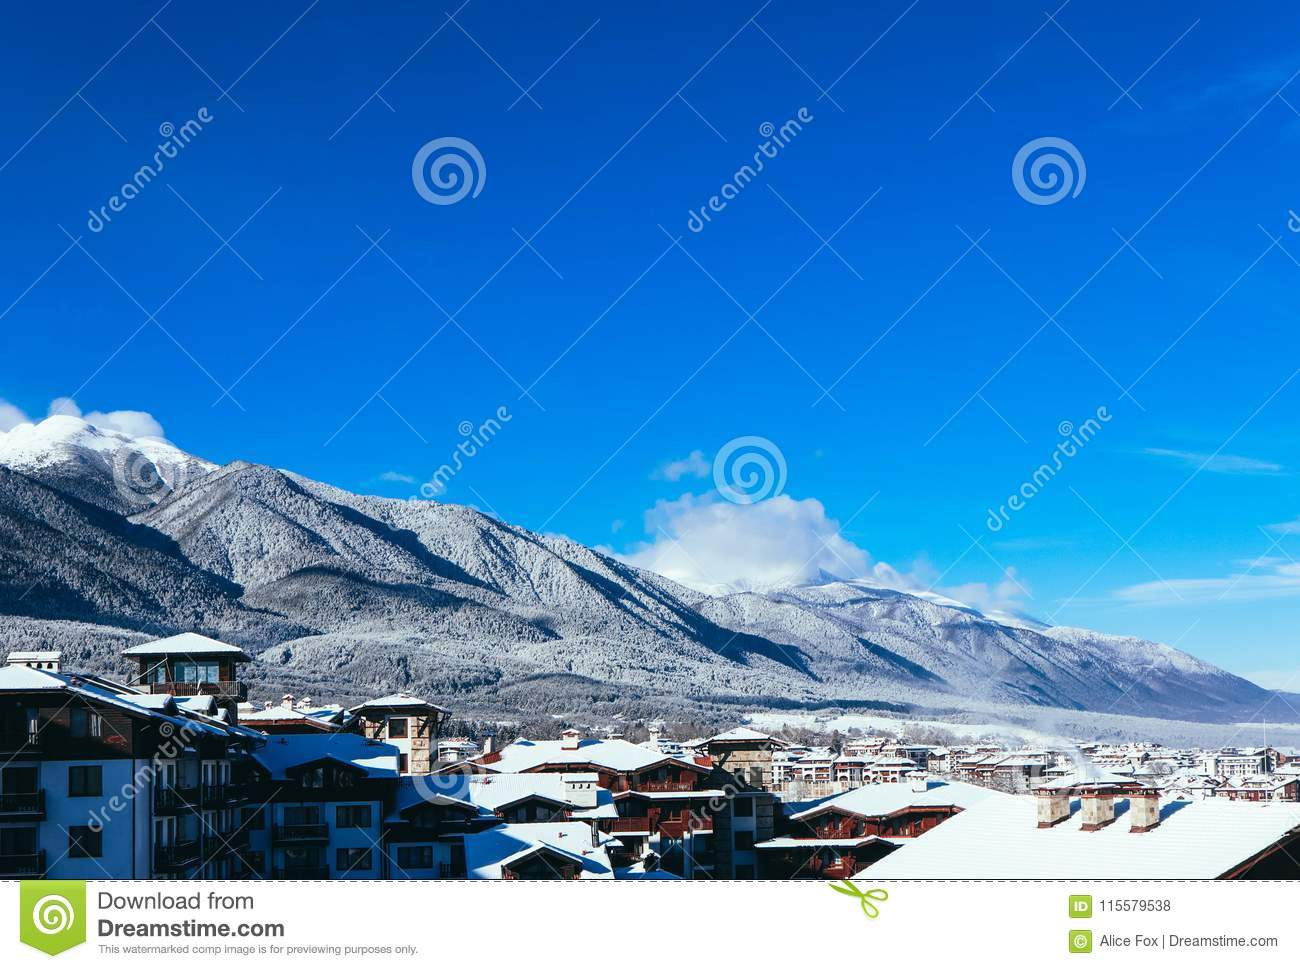 Mountain snow peak, Alpine village houses. Europe, old town winter ice hill top panoramic view.